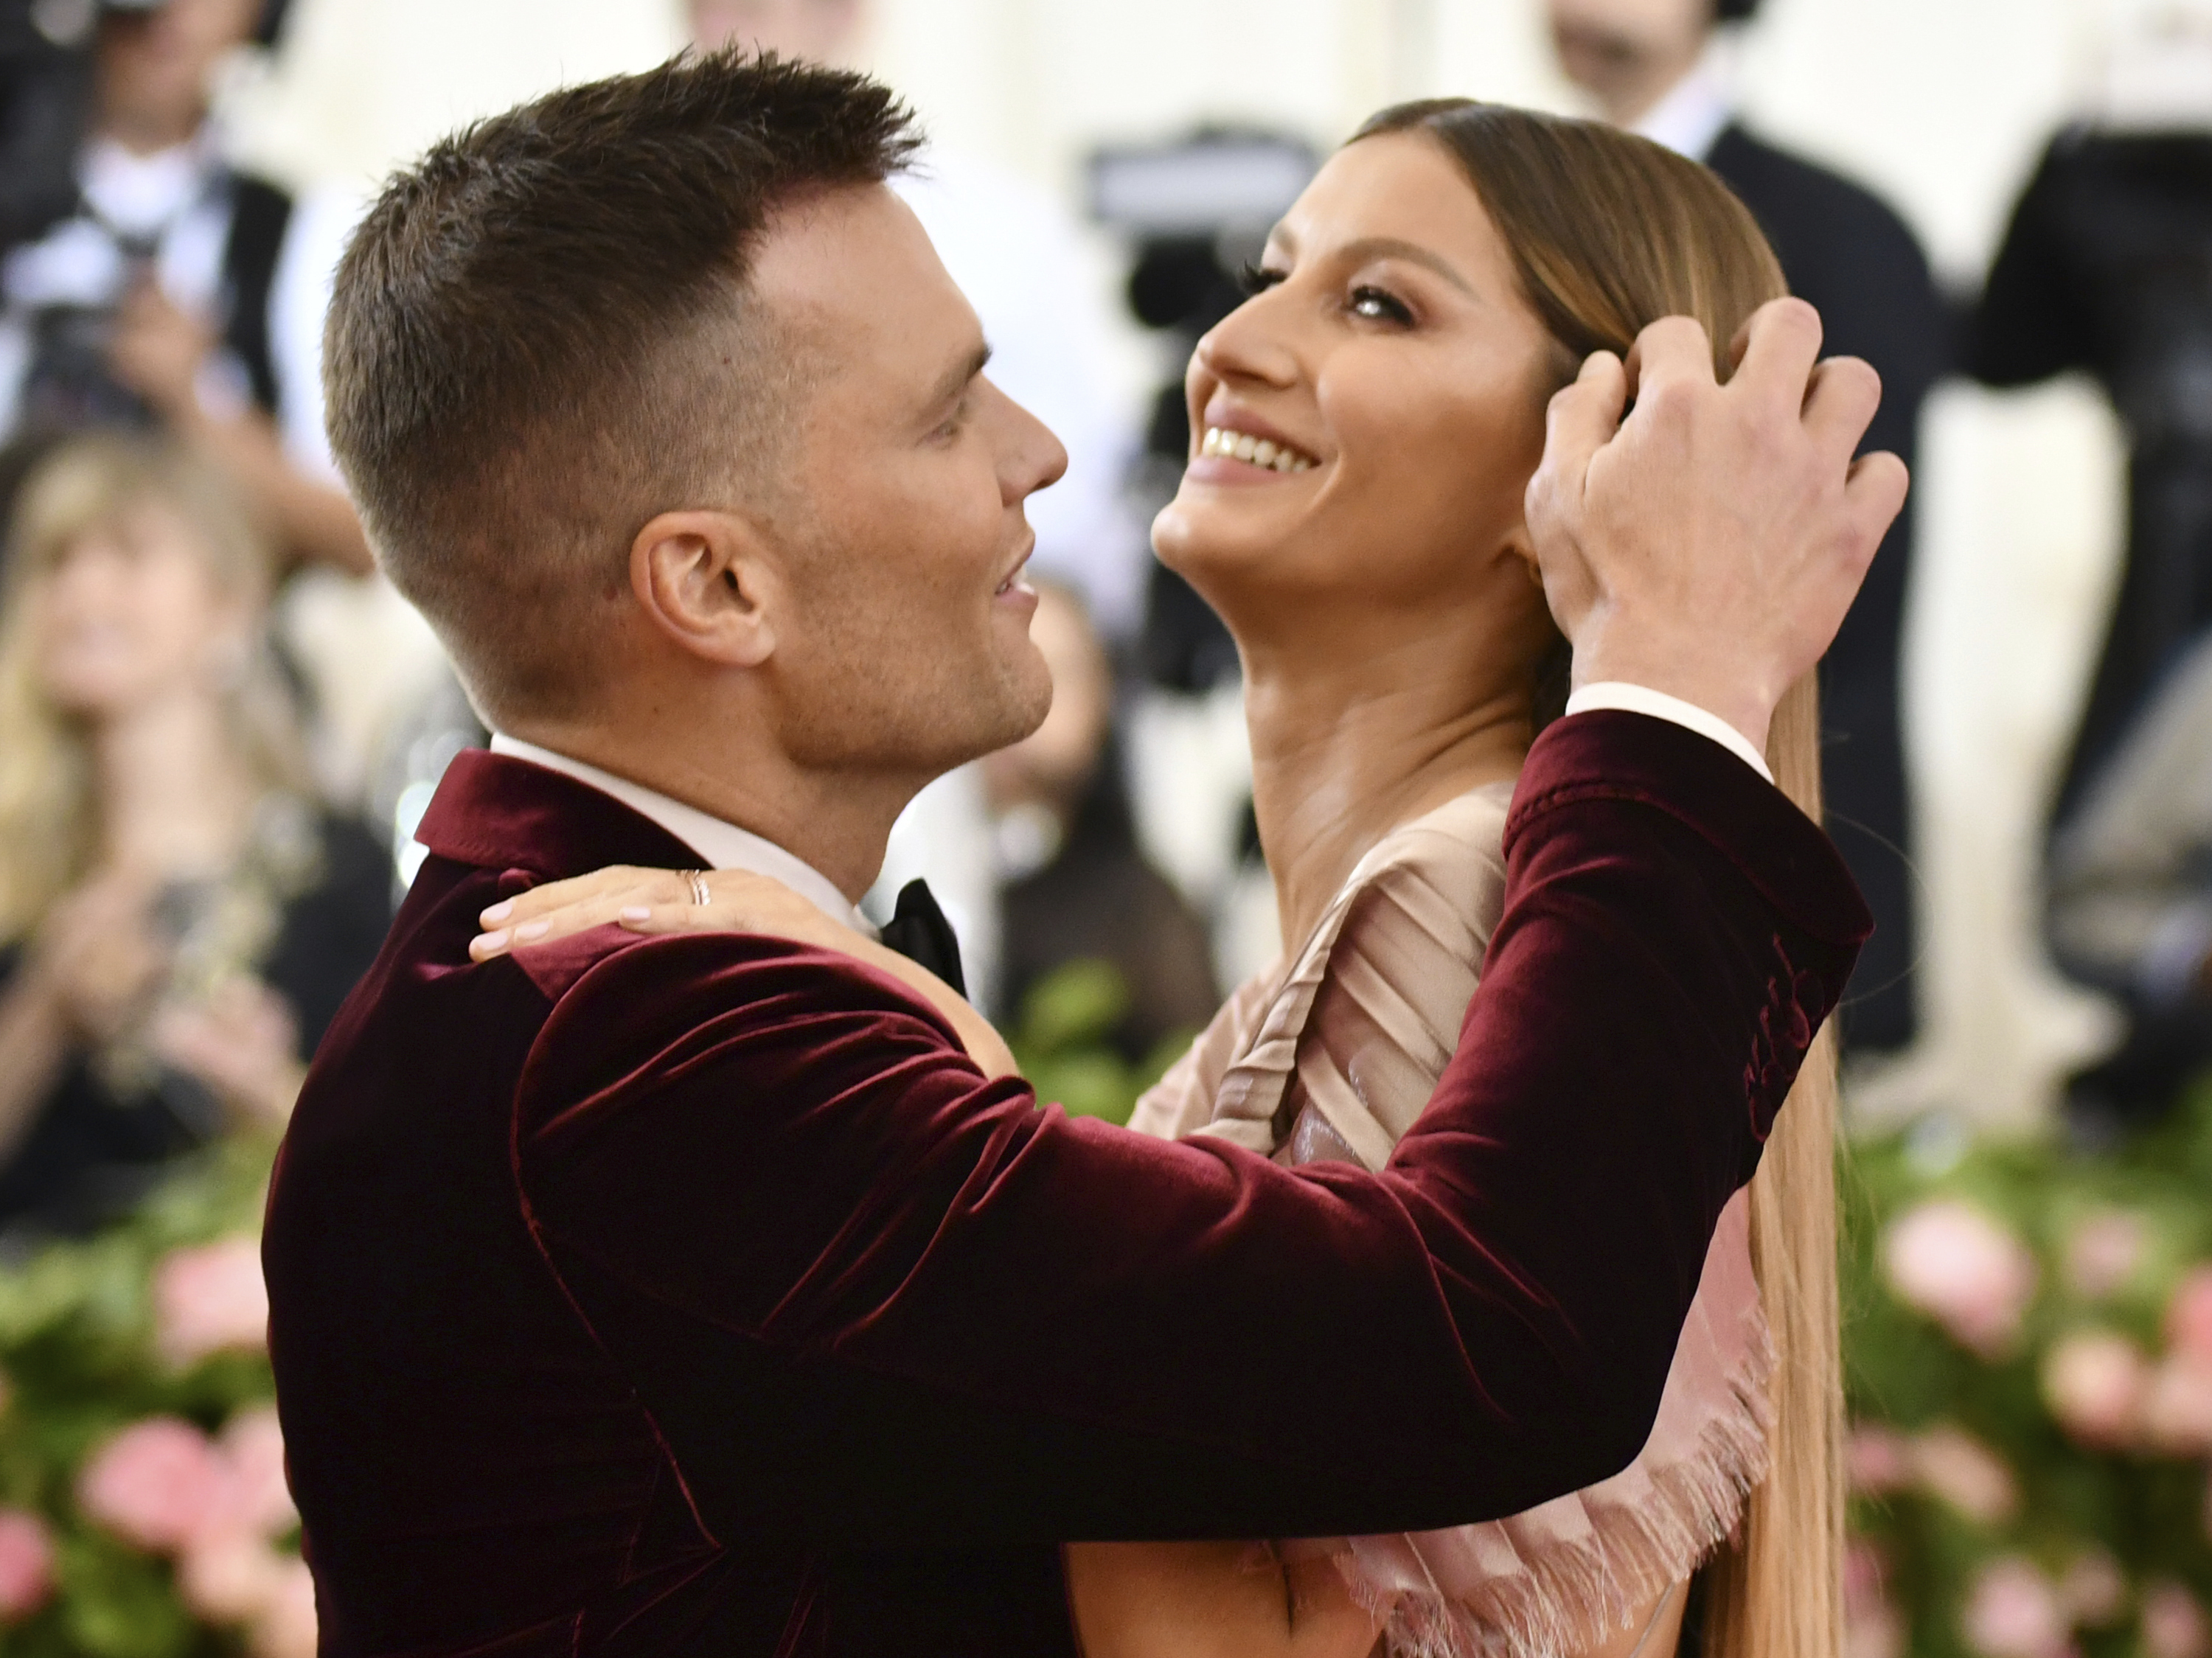 """Tom Brady, left, and Gisele Bundchen attend The Metropolitan Museum of Art's Costume Institute benefit gala celebrating the opening of the """"Camp: Notes on Fashion"""" exhibition on Monday, May 6, 2019, in New York. (Photo by Charles Sykes/Invision/AP)"""